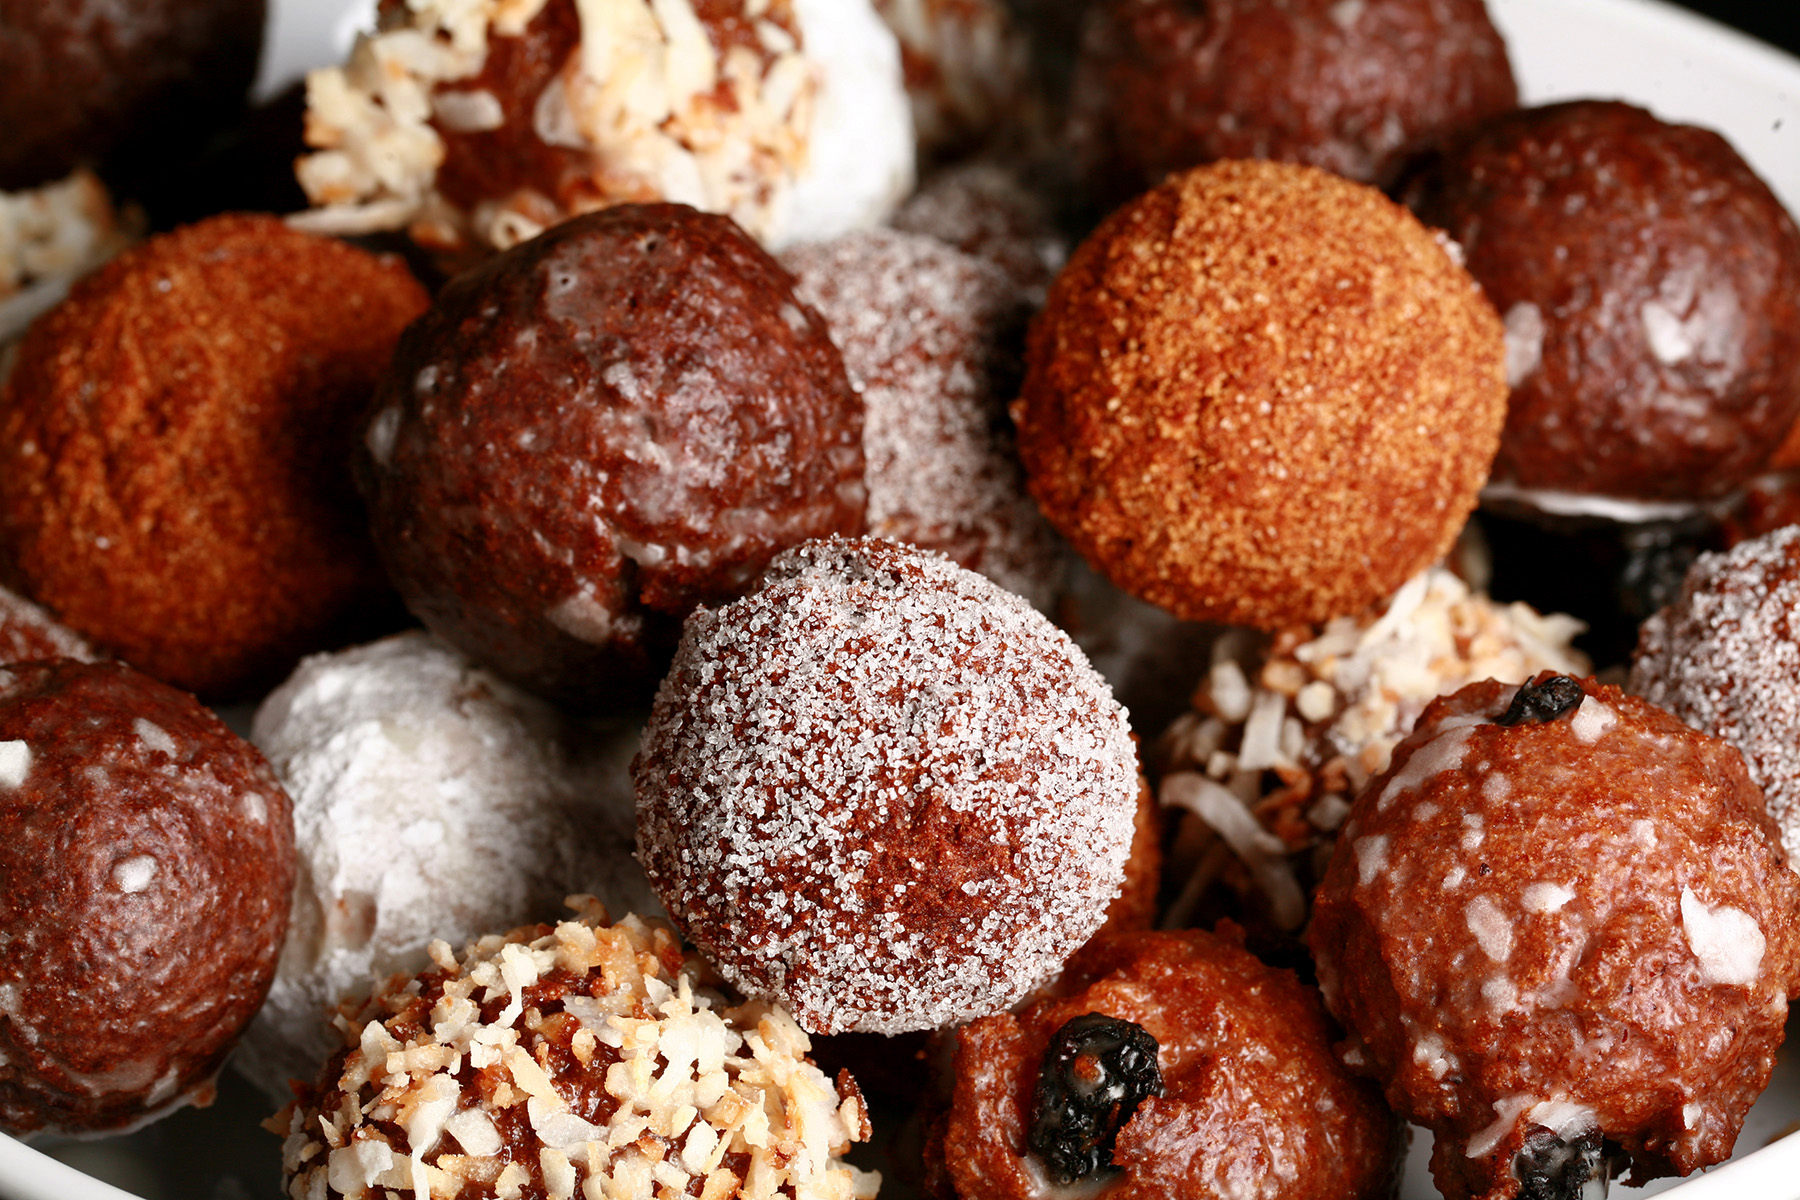 A close up view of an assortment of gluten-free timbits: Toasted coconut, chocolate glazed, cinnamon sugar, powdered sugar, and dutchie versions are all visible.